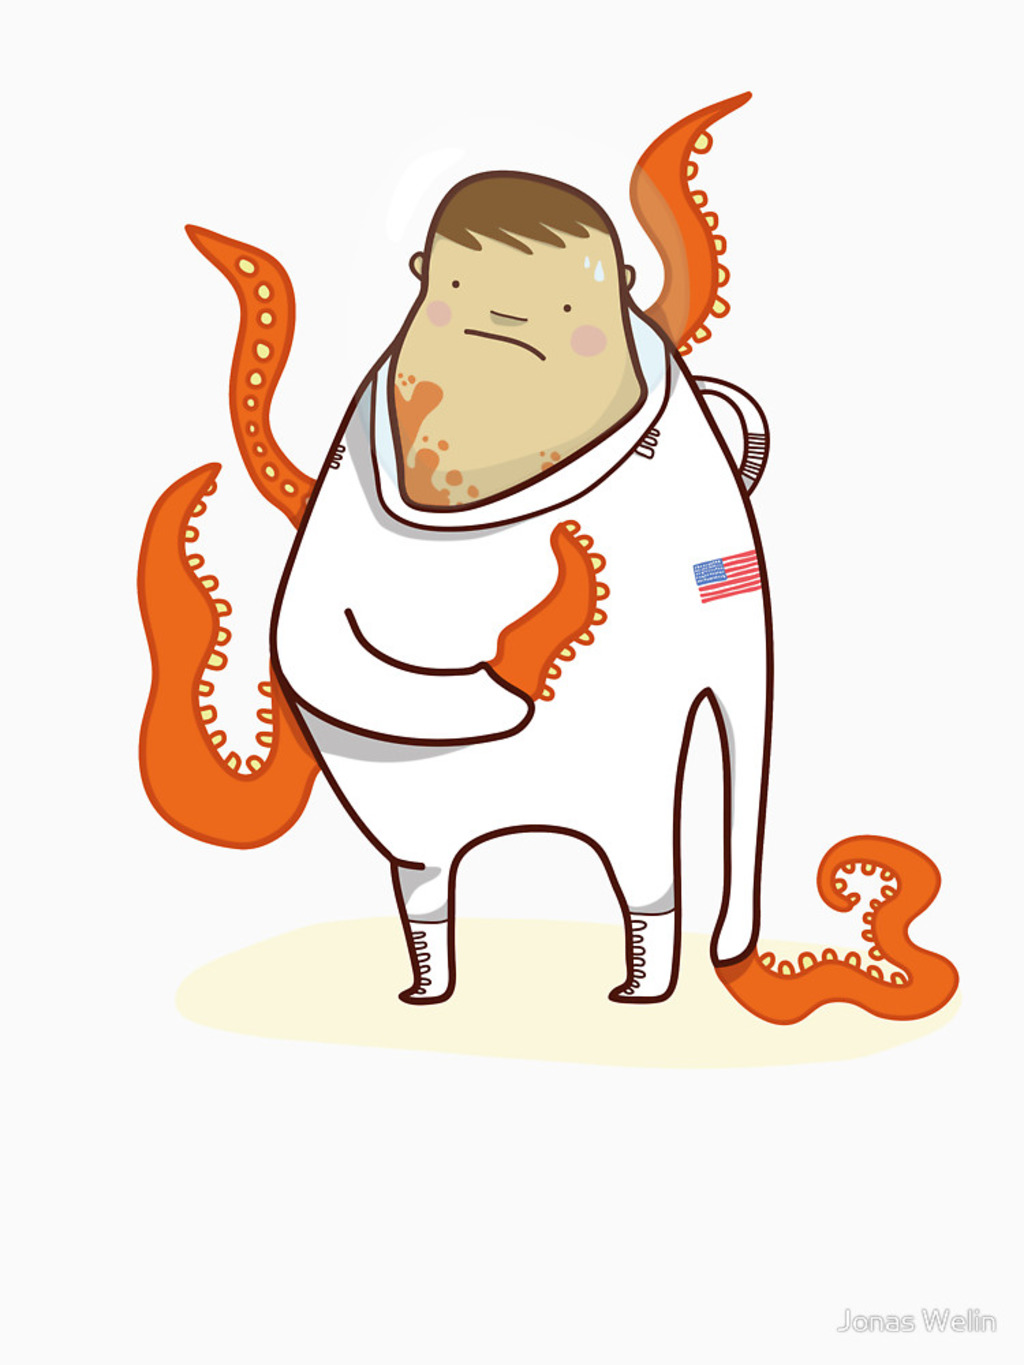 RedBubble: Astronaut - Alien takeover